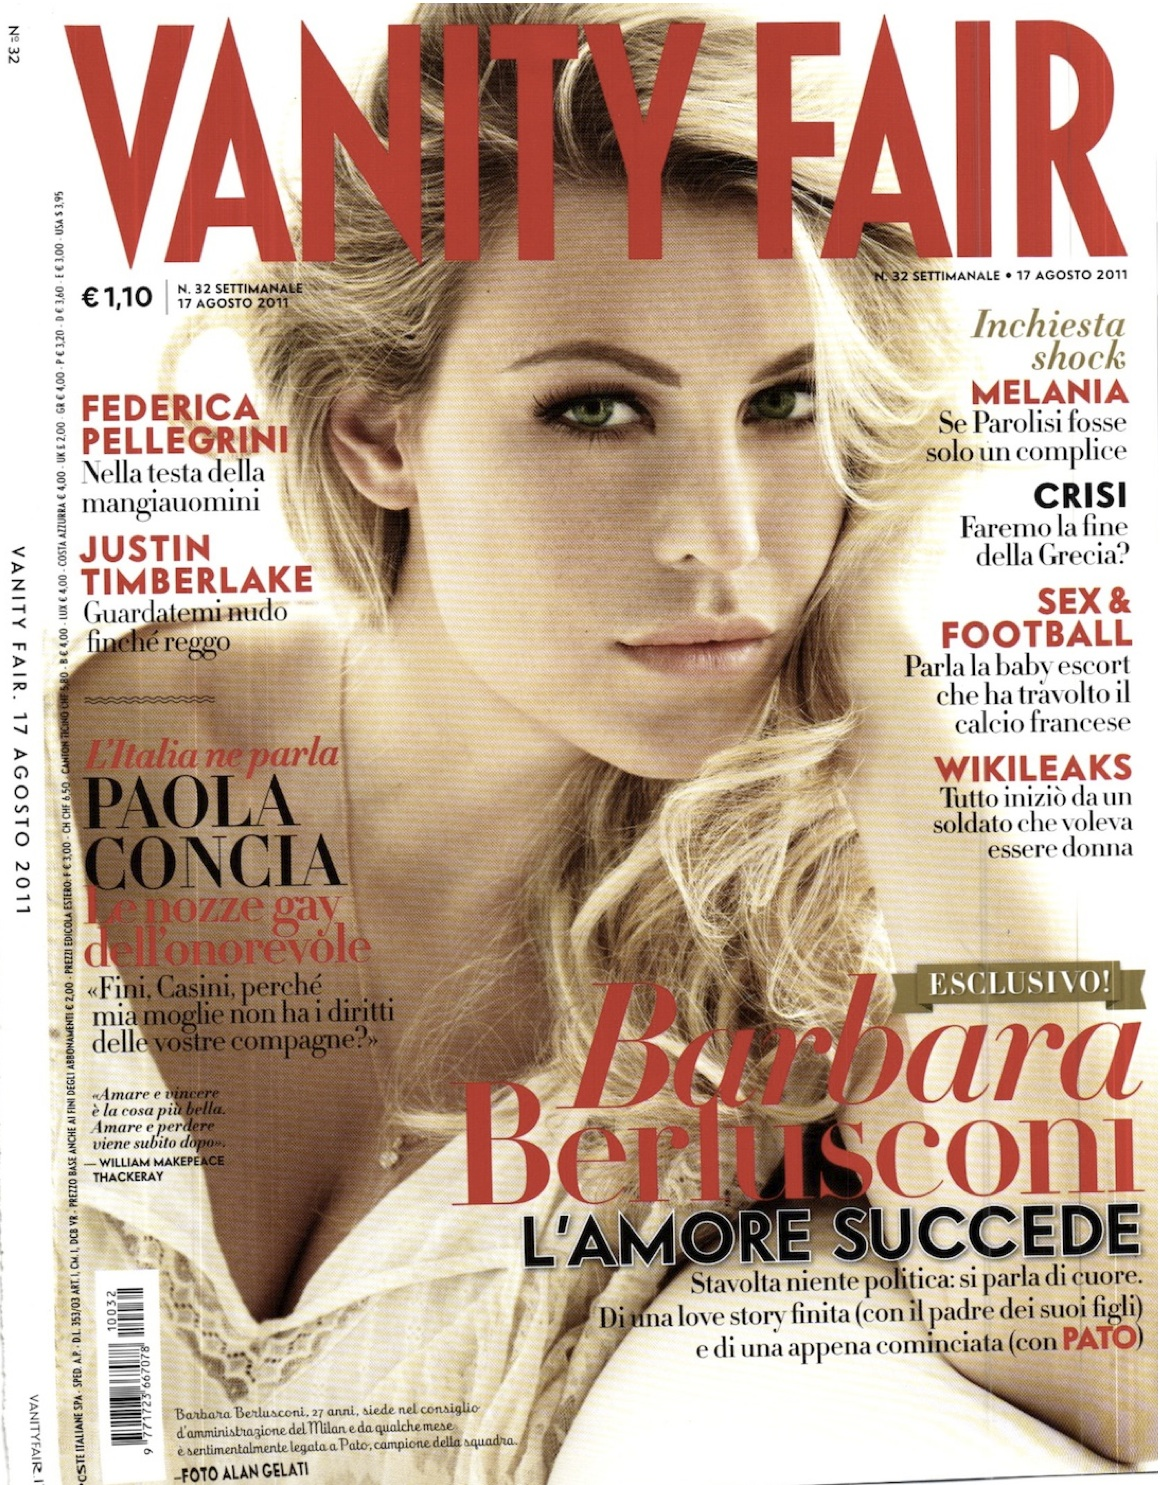 Barbara Berlusconi for Vanity Fair Italia August 17th 2011 ...